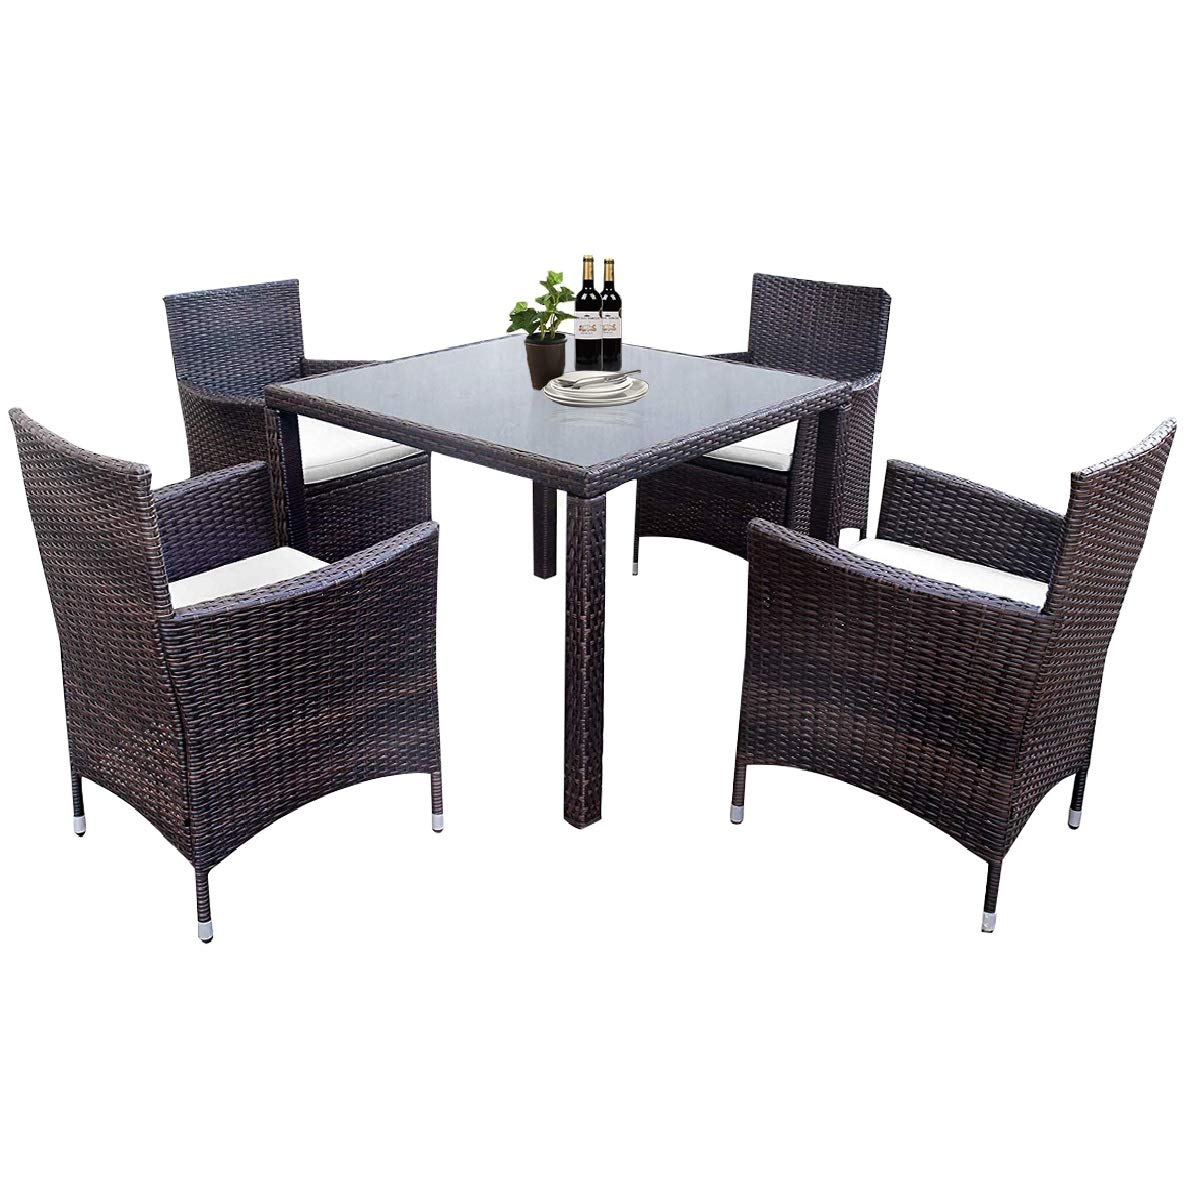 Budget Patio Dining Set: CHEAP LZ LEISURE ZONE 5 Pieces Patio Dining Set Outdoor